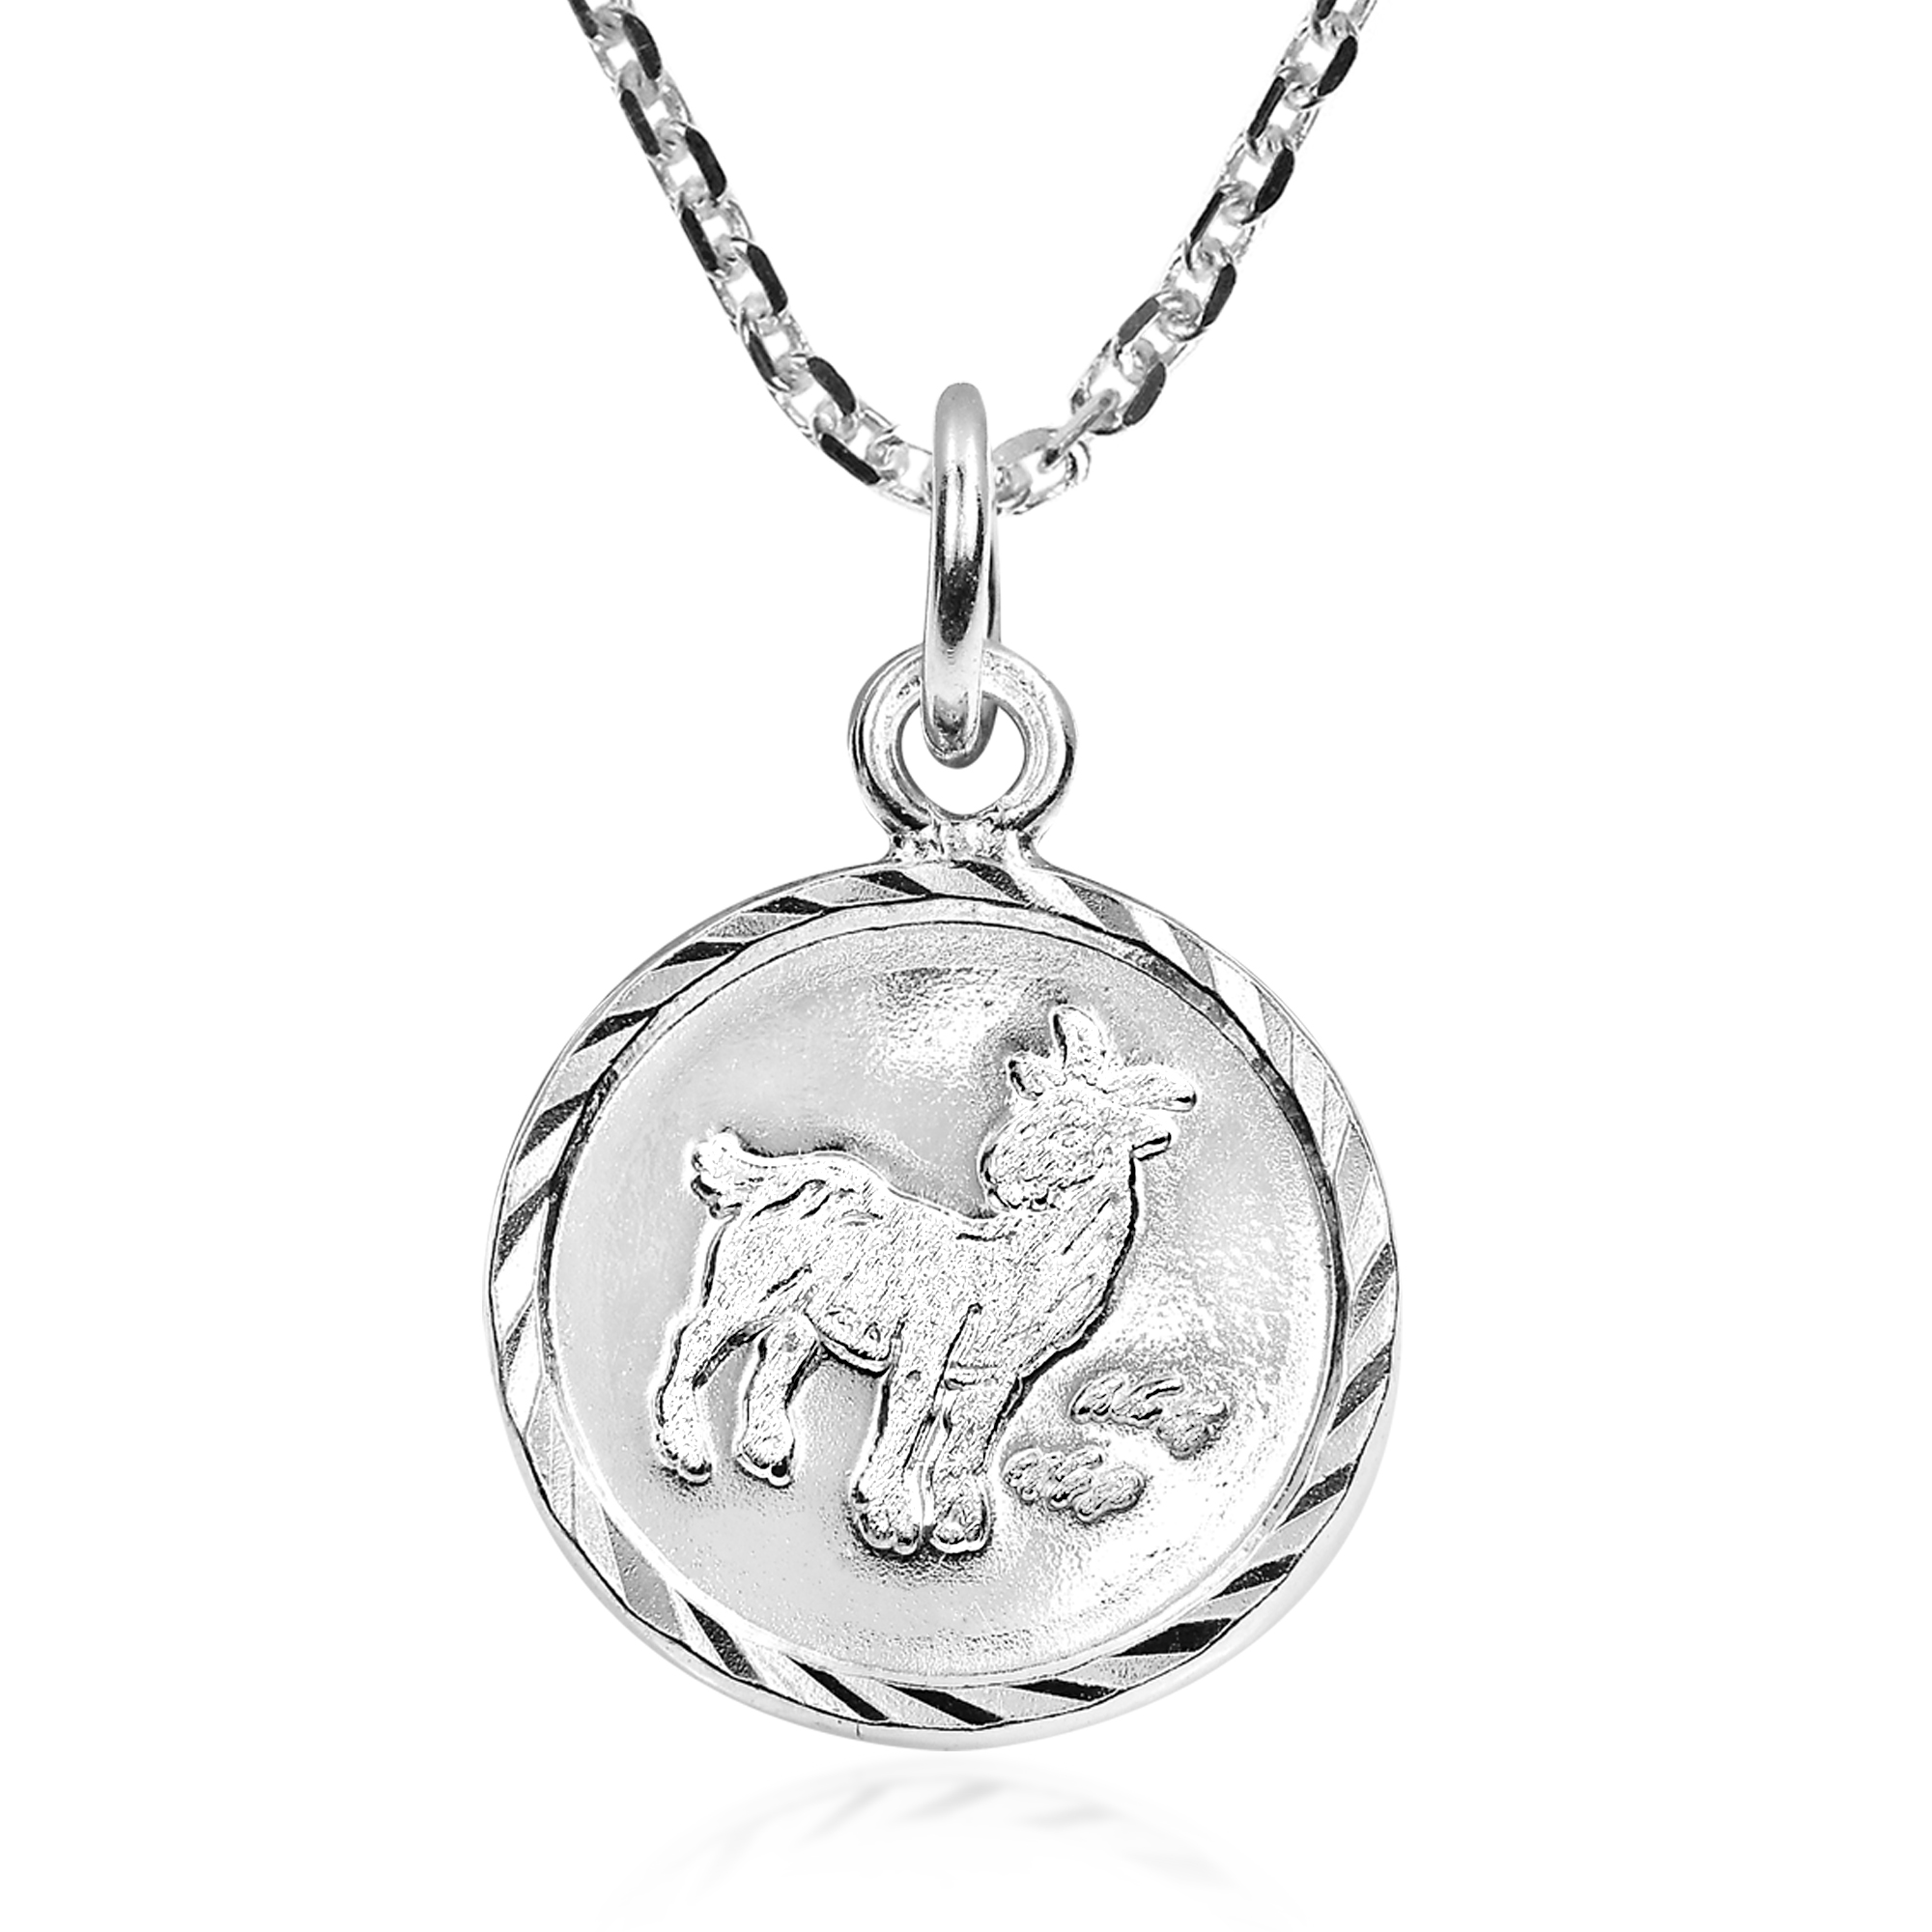 pendant to capricorn item goat circa click sterlingcapricornnecklace sterling full expand silver necklace